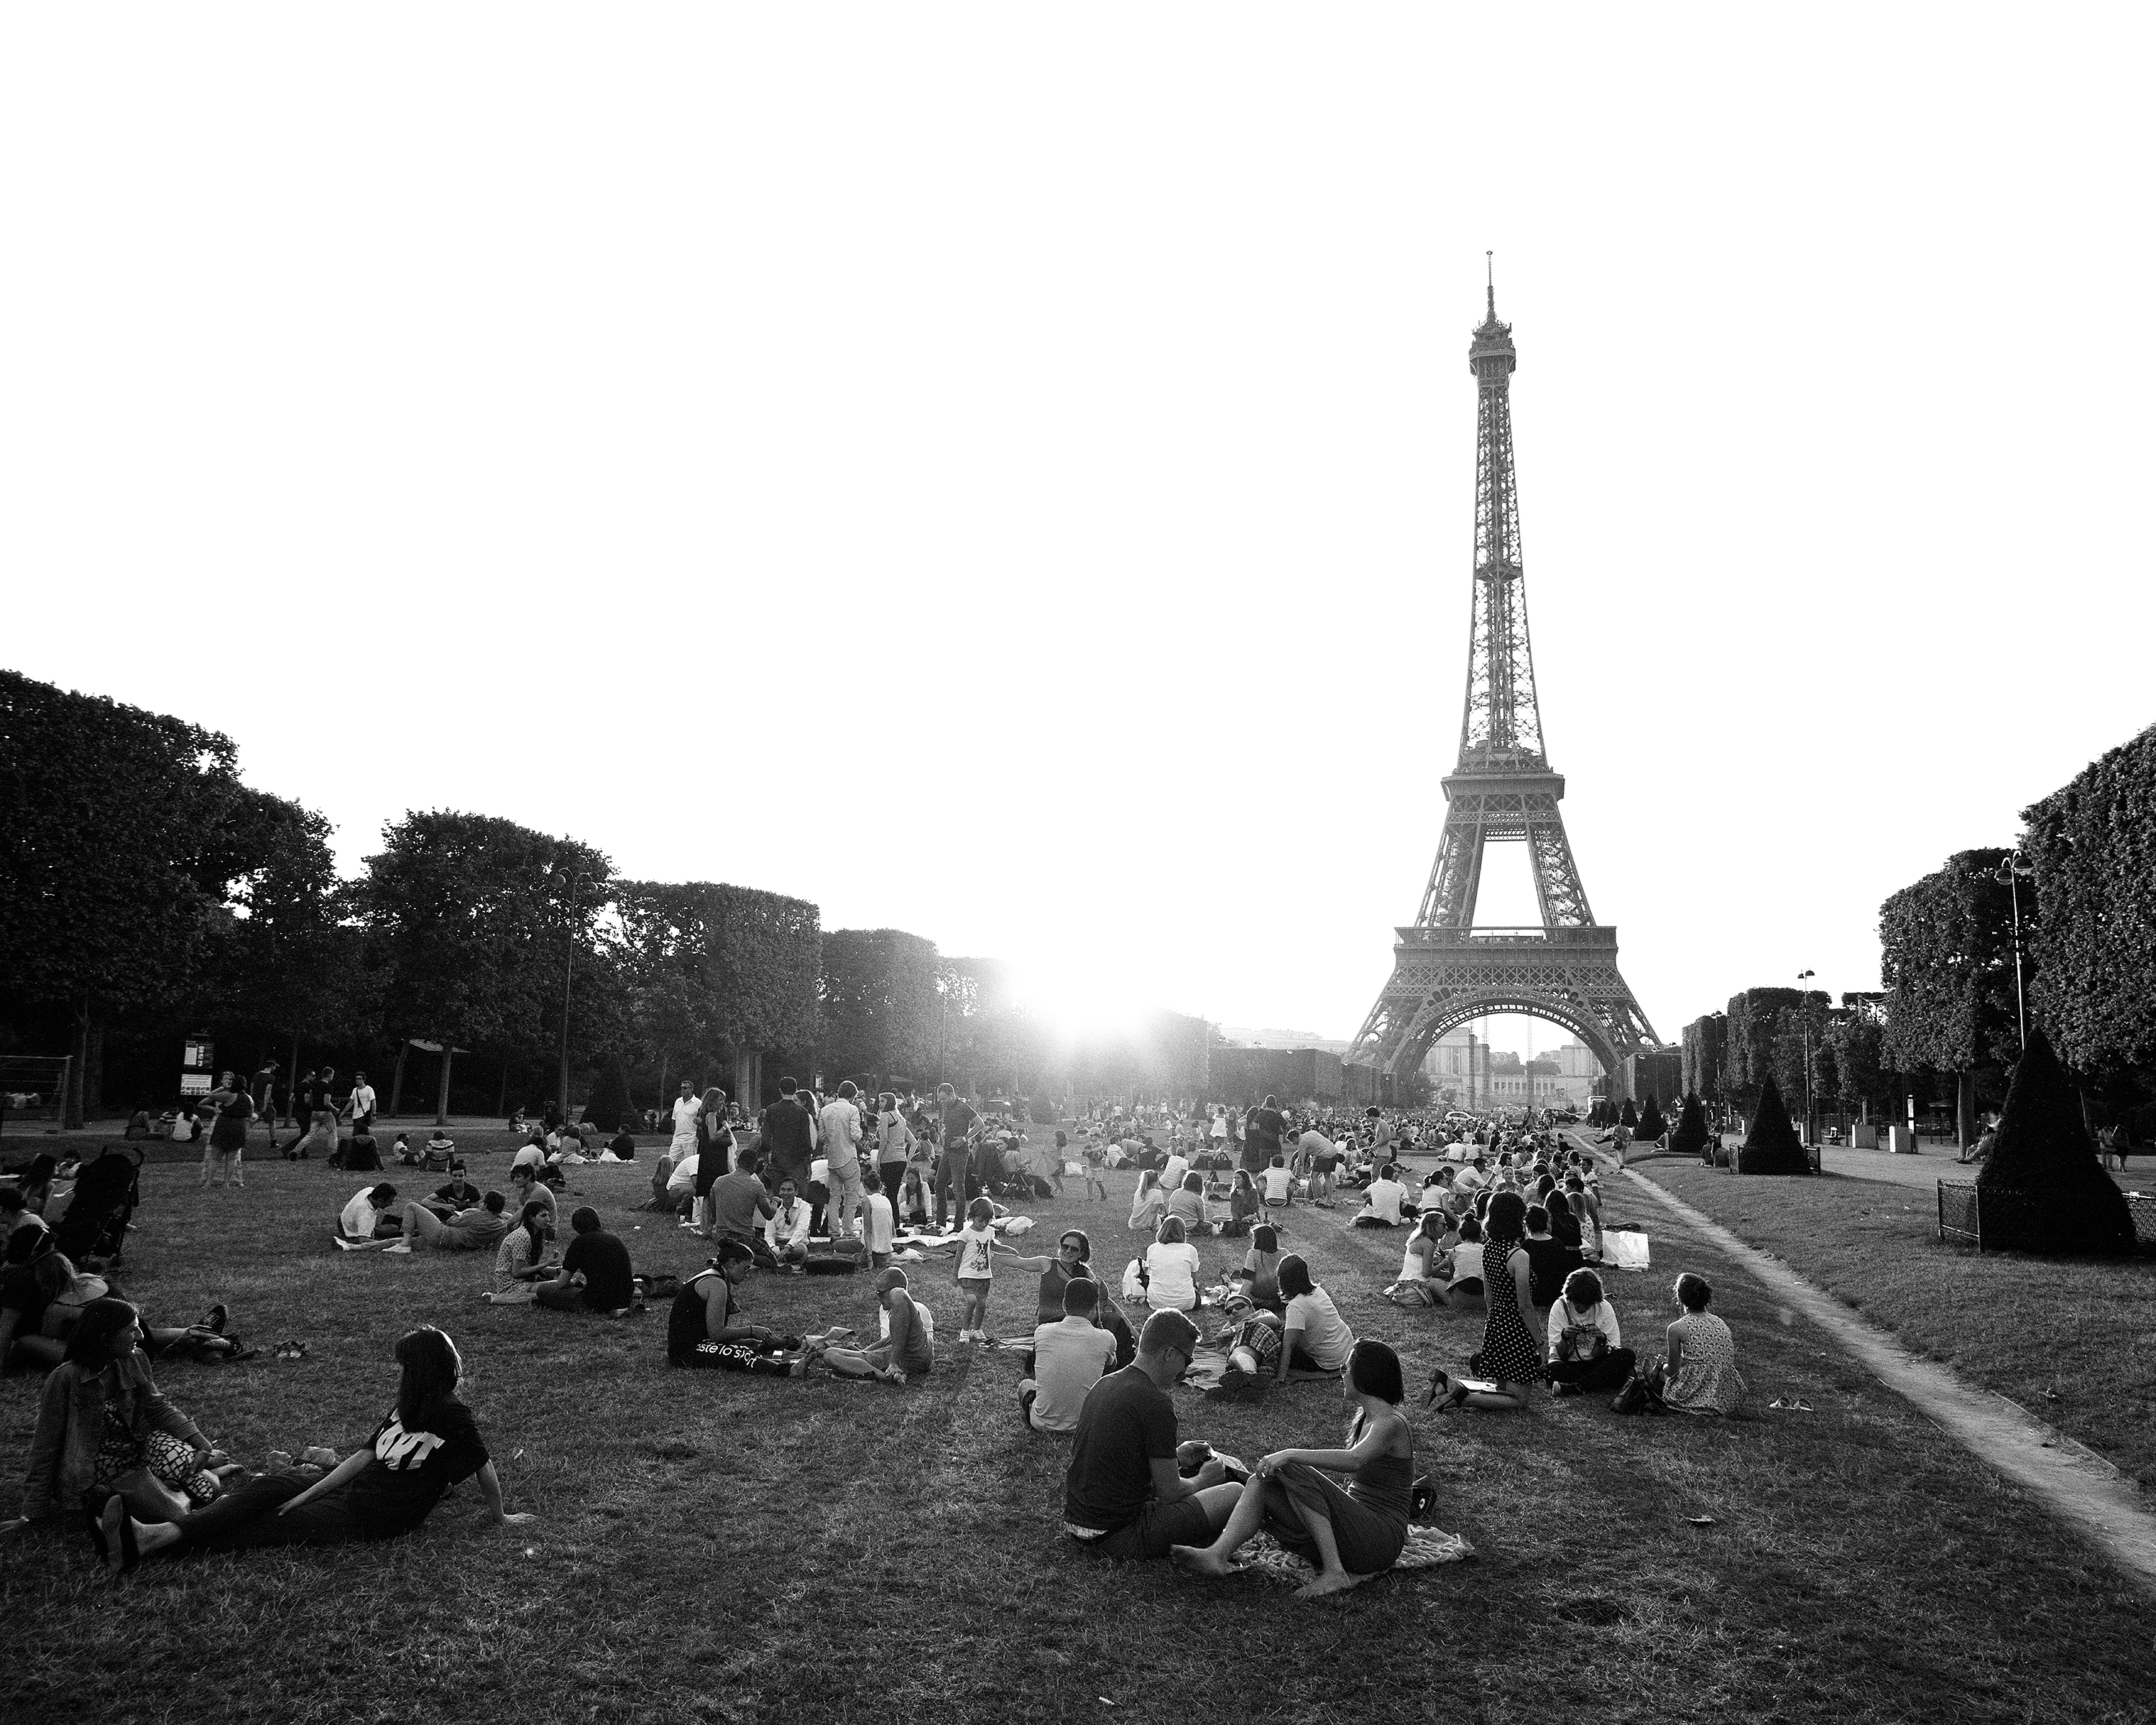 paris france people black and white champ de mars eiffel               tower pleasure fun relax street view art